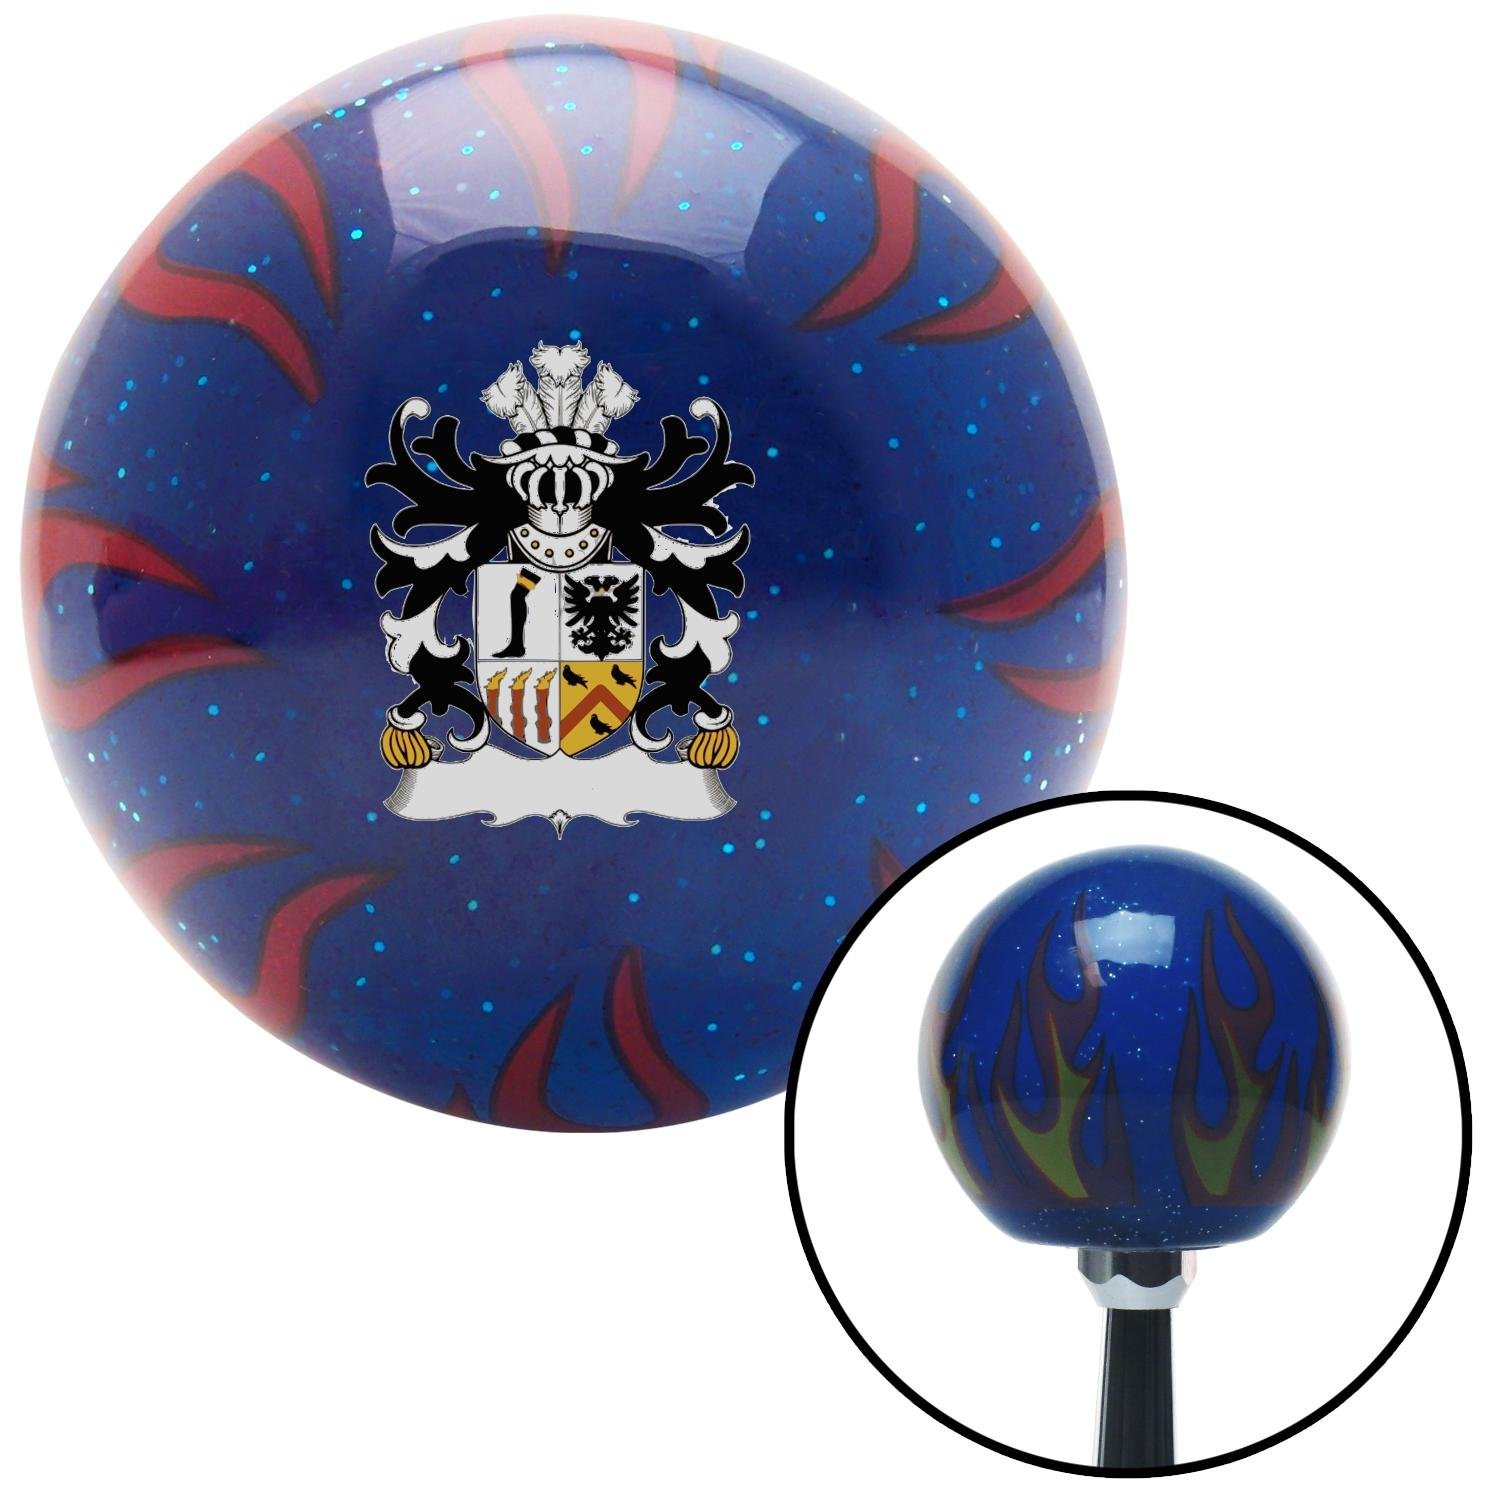 Roystonlodge Coat of Arms American Shifter 251778 Blue Flame Metal Flake Shift Knob with M16 x 1.5 Insert